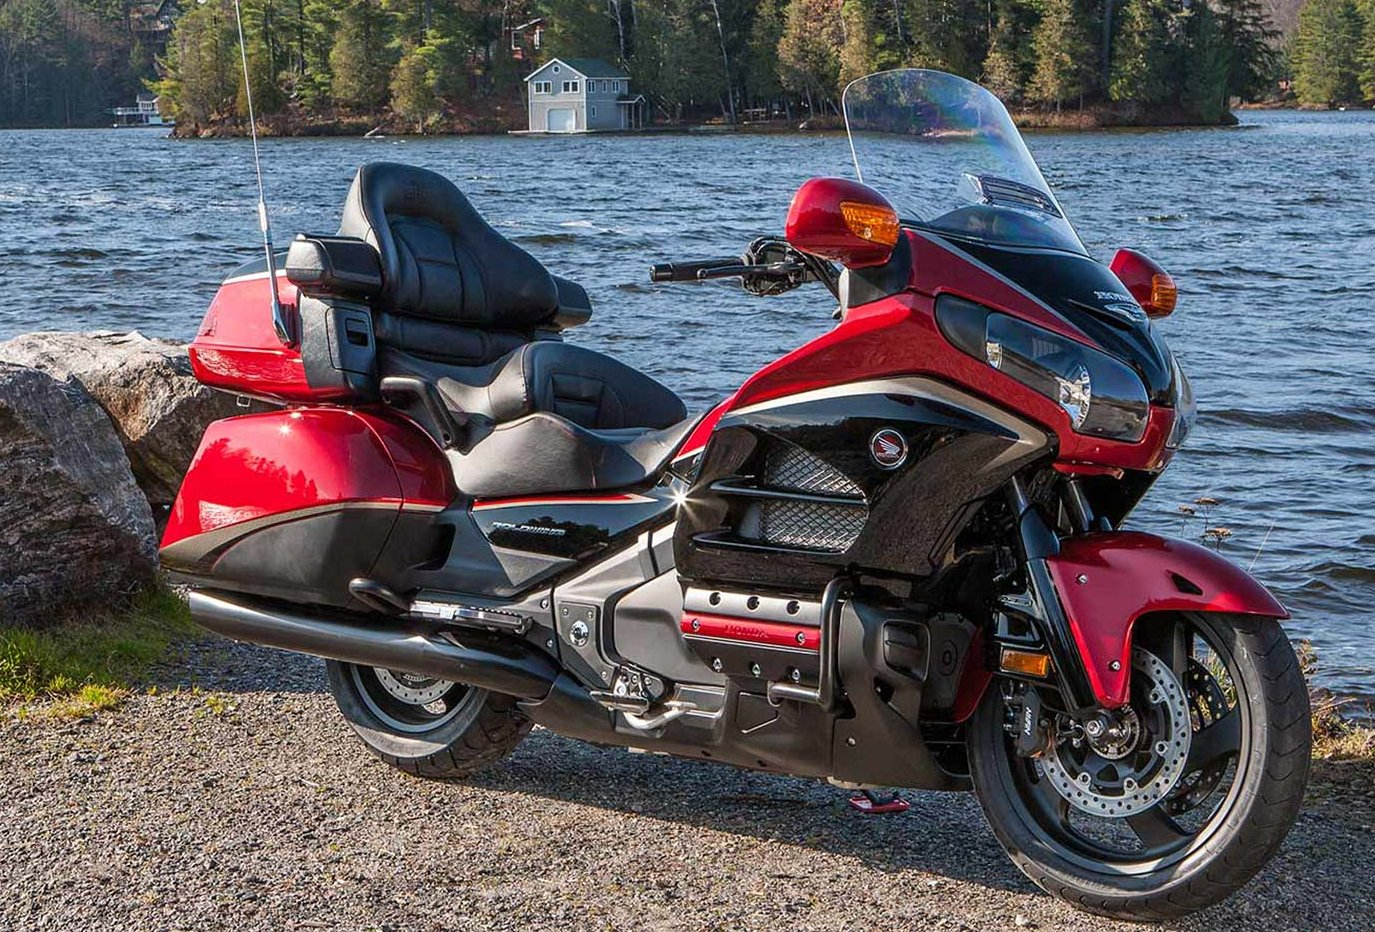 Honda Gold Wing GL1800 – touring motorcycle